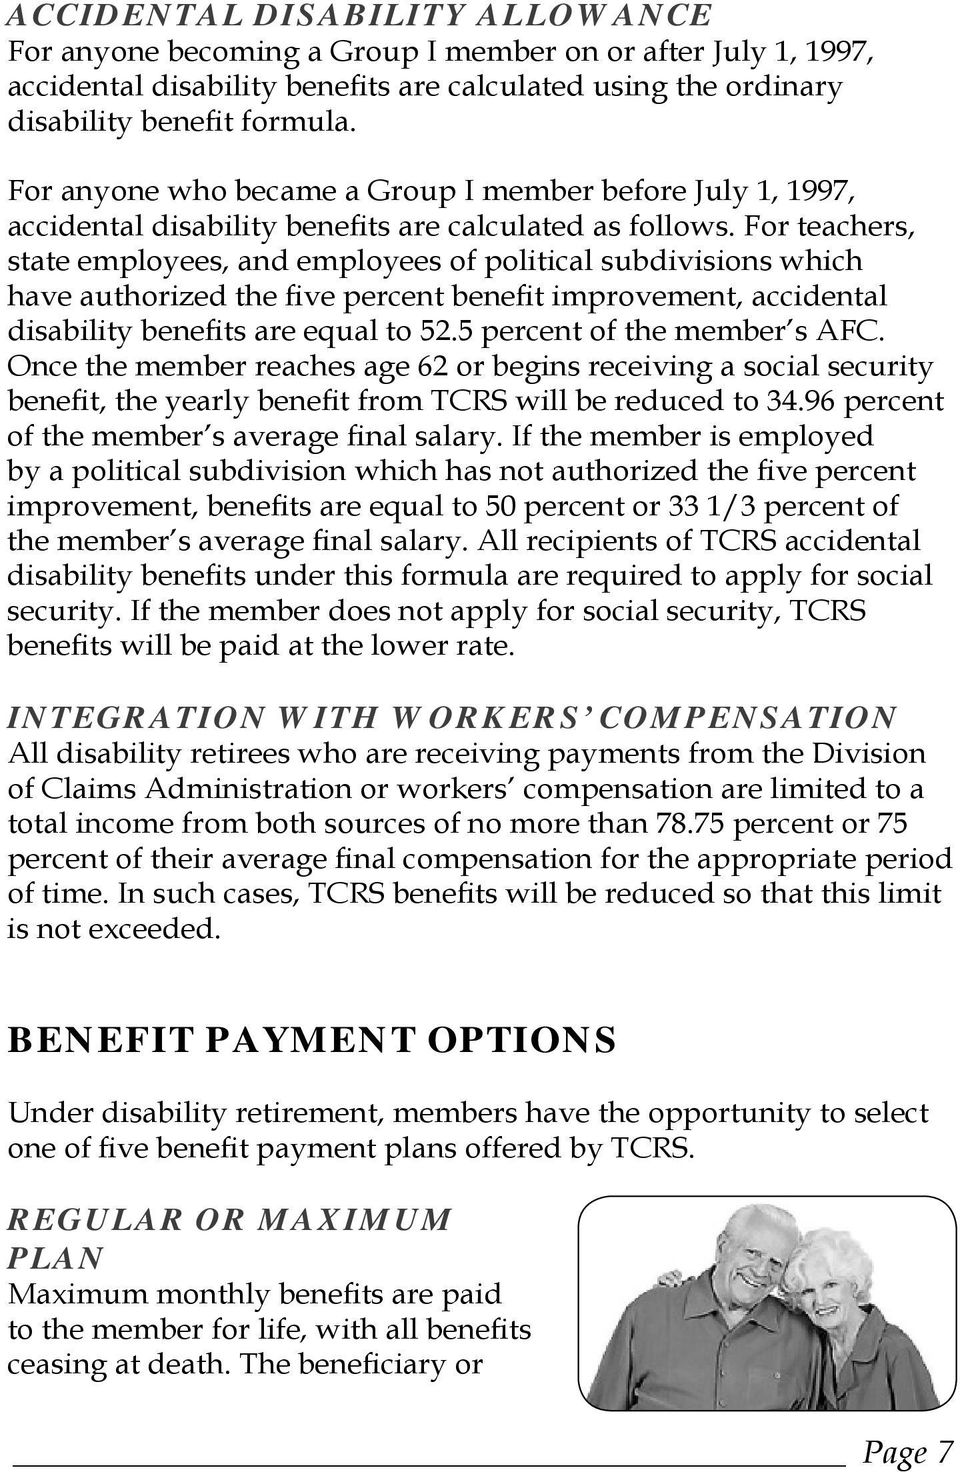 For teachers, state employees, and employees of political subdivisions which have authorized the five percent benefit improvement, accidental disability benefits are equal to 52.